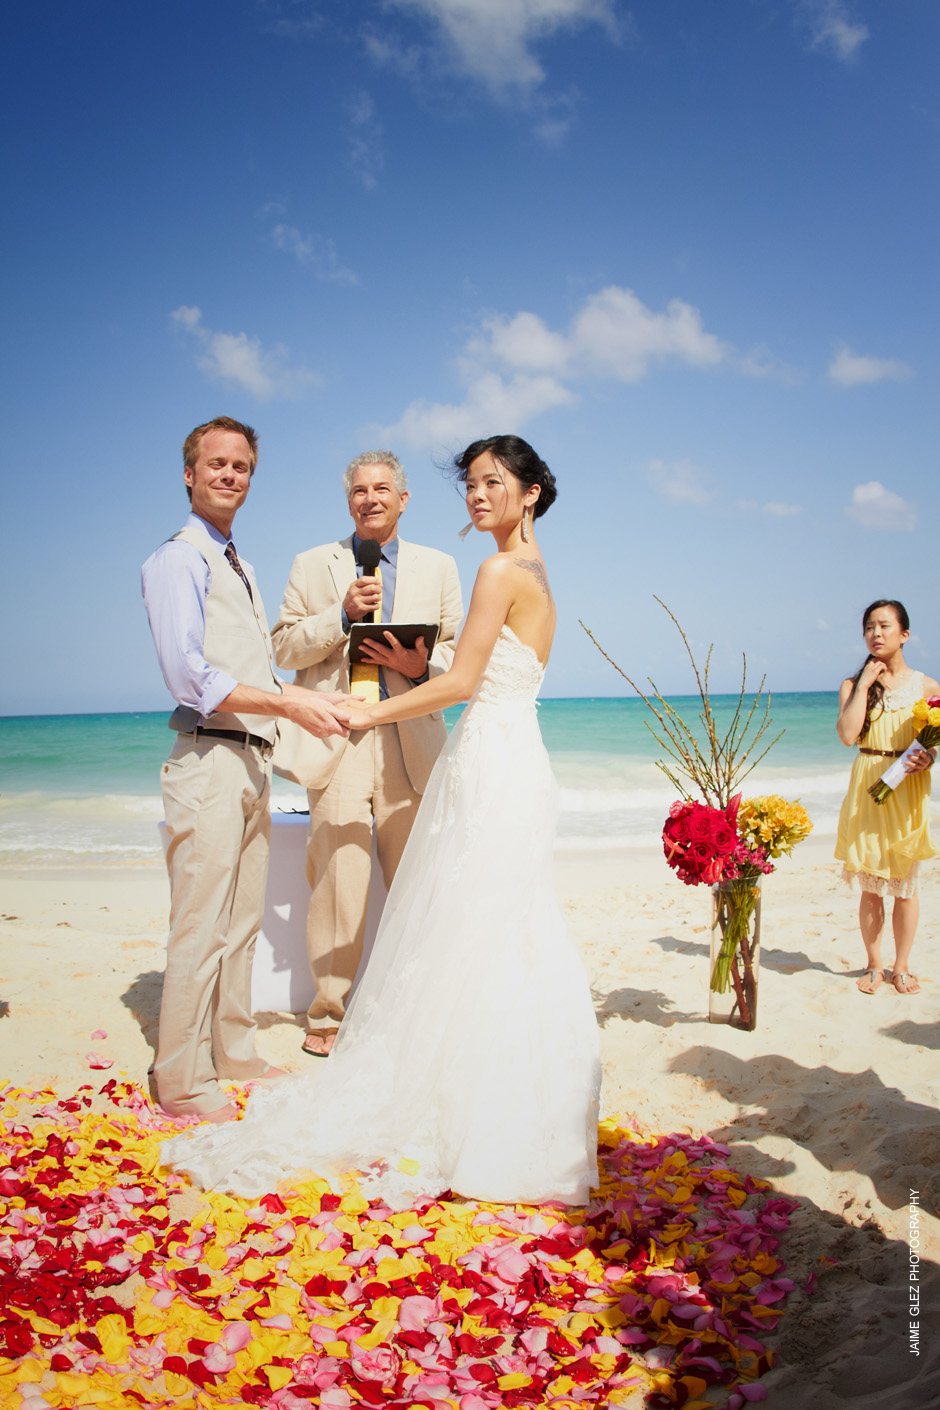 Photographing a stunning tropical wedding in Playa del Carmen, Mexico with a romantic touch of rose petals.